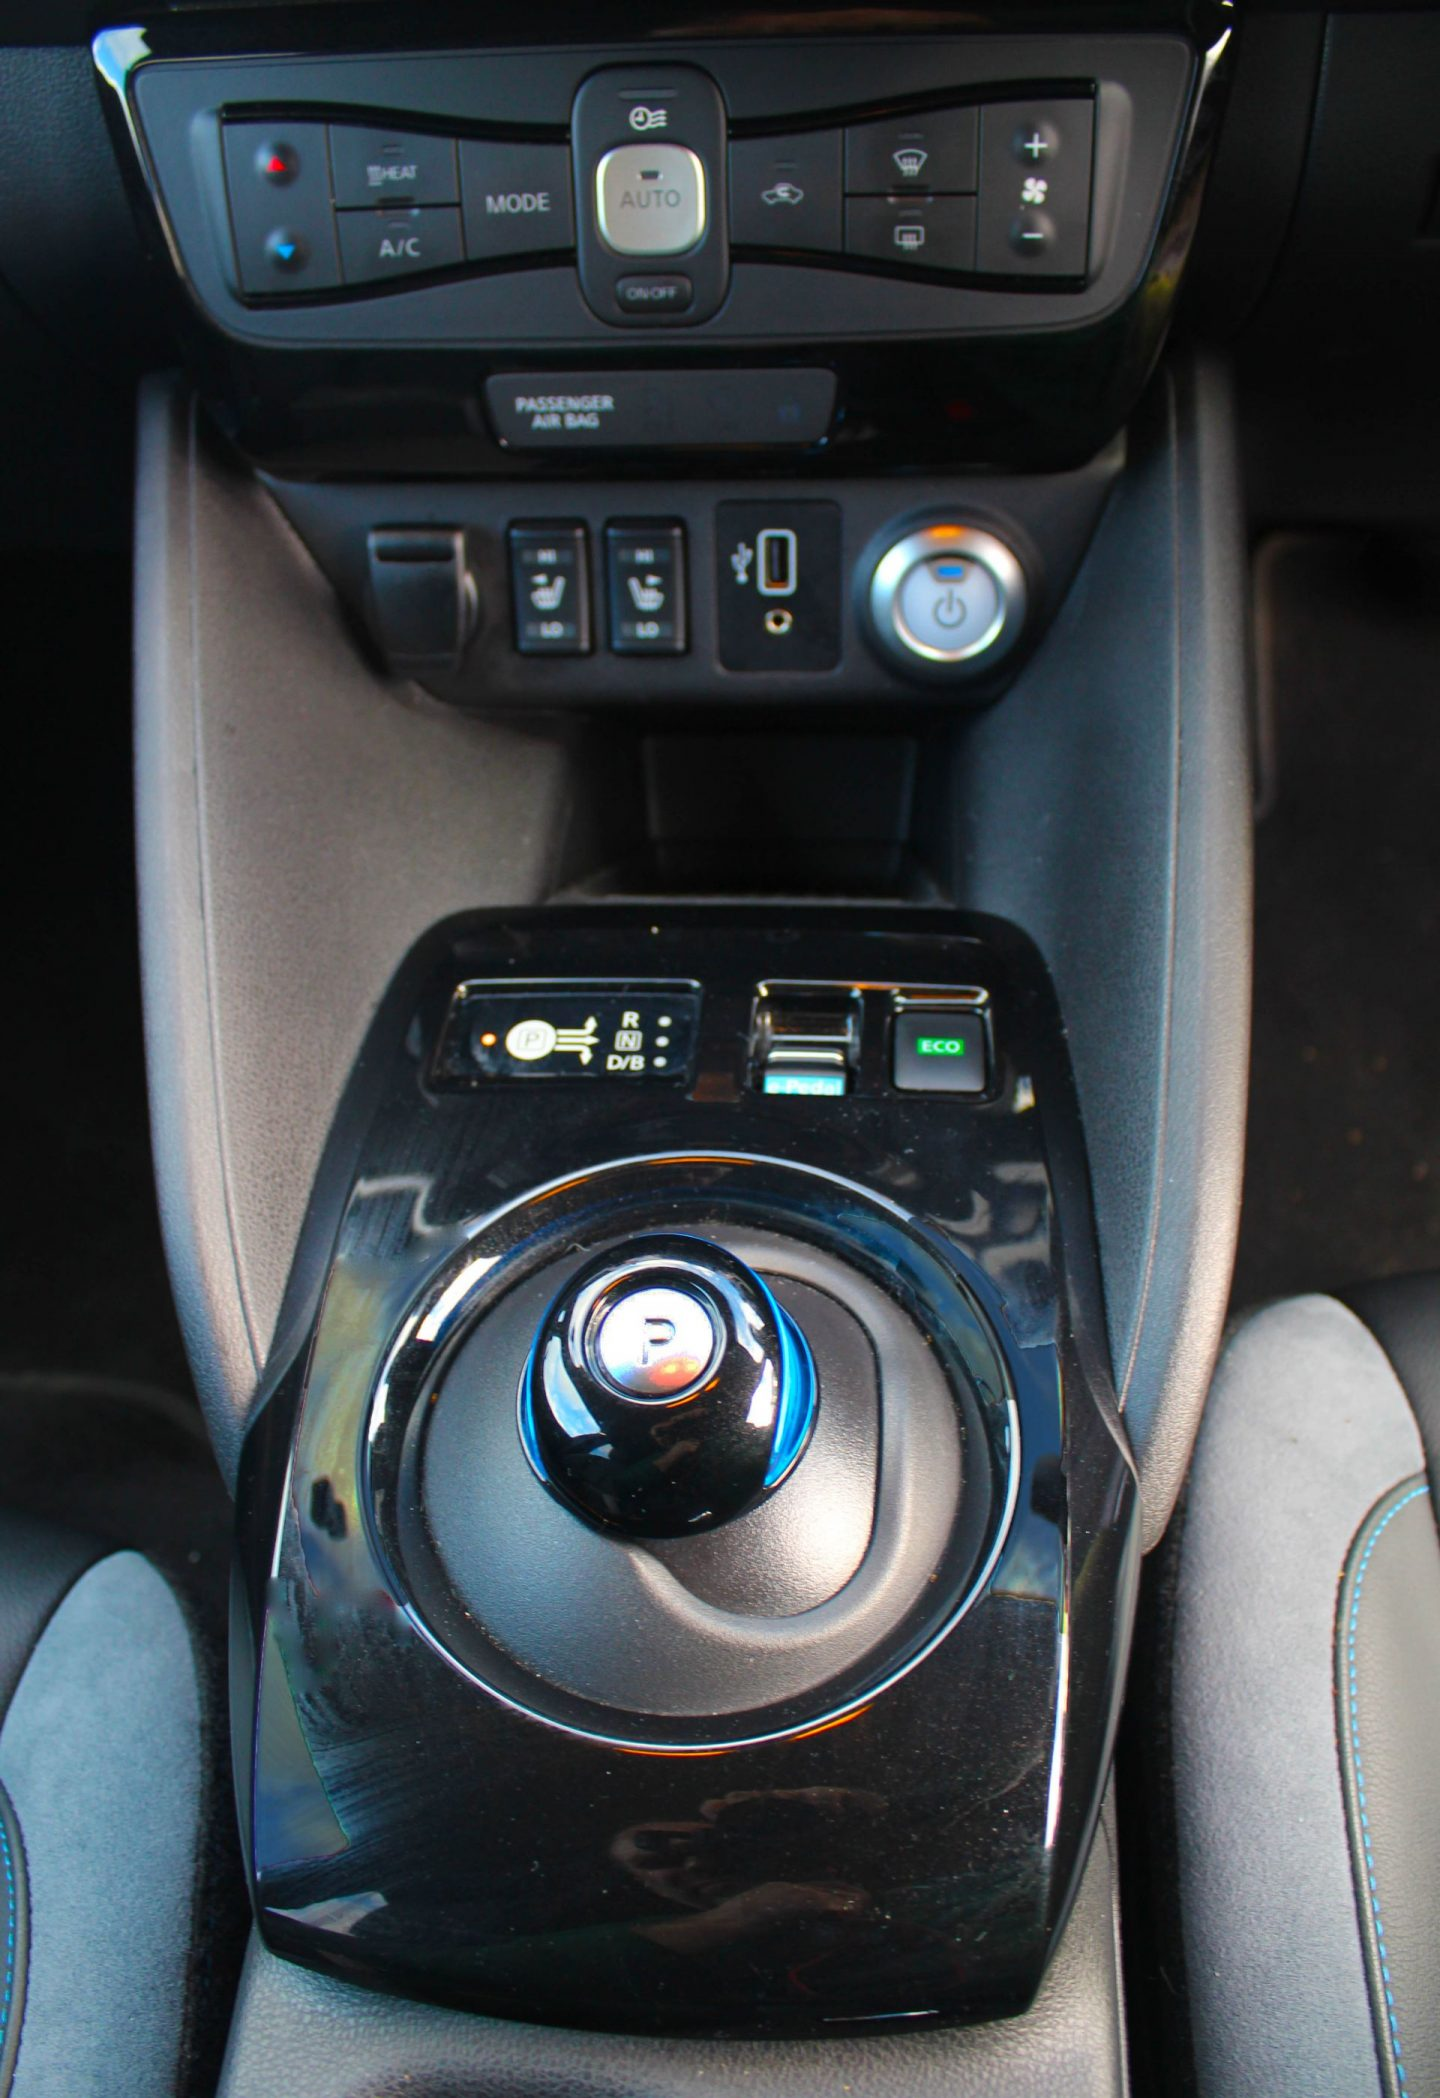 Nissan Leaf central console